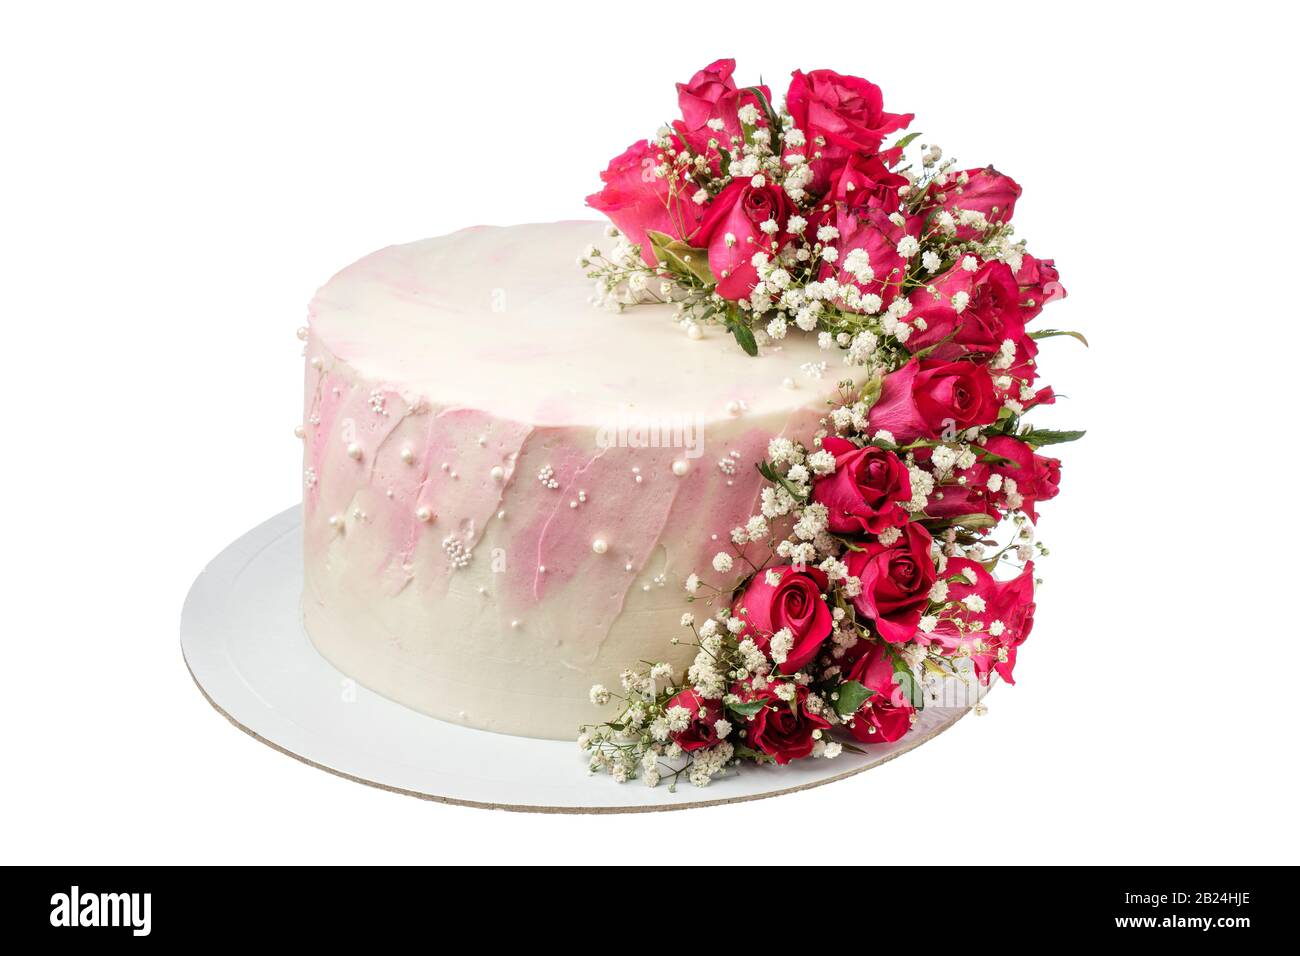 Wondrous Flower Cake For The Holiday With Roses Flowers On A White Funny Birthday Cards Online Hetedamsfinfo